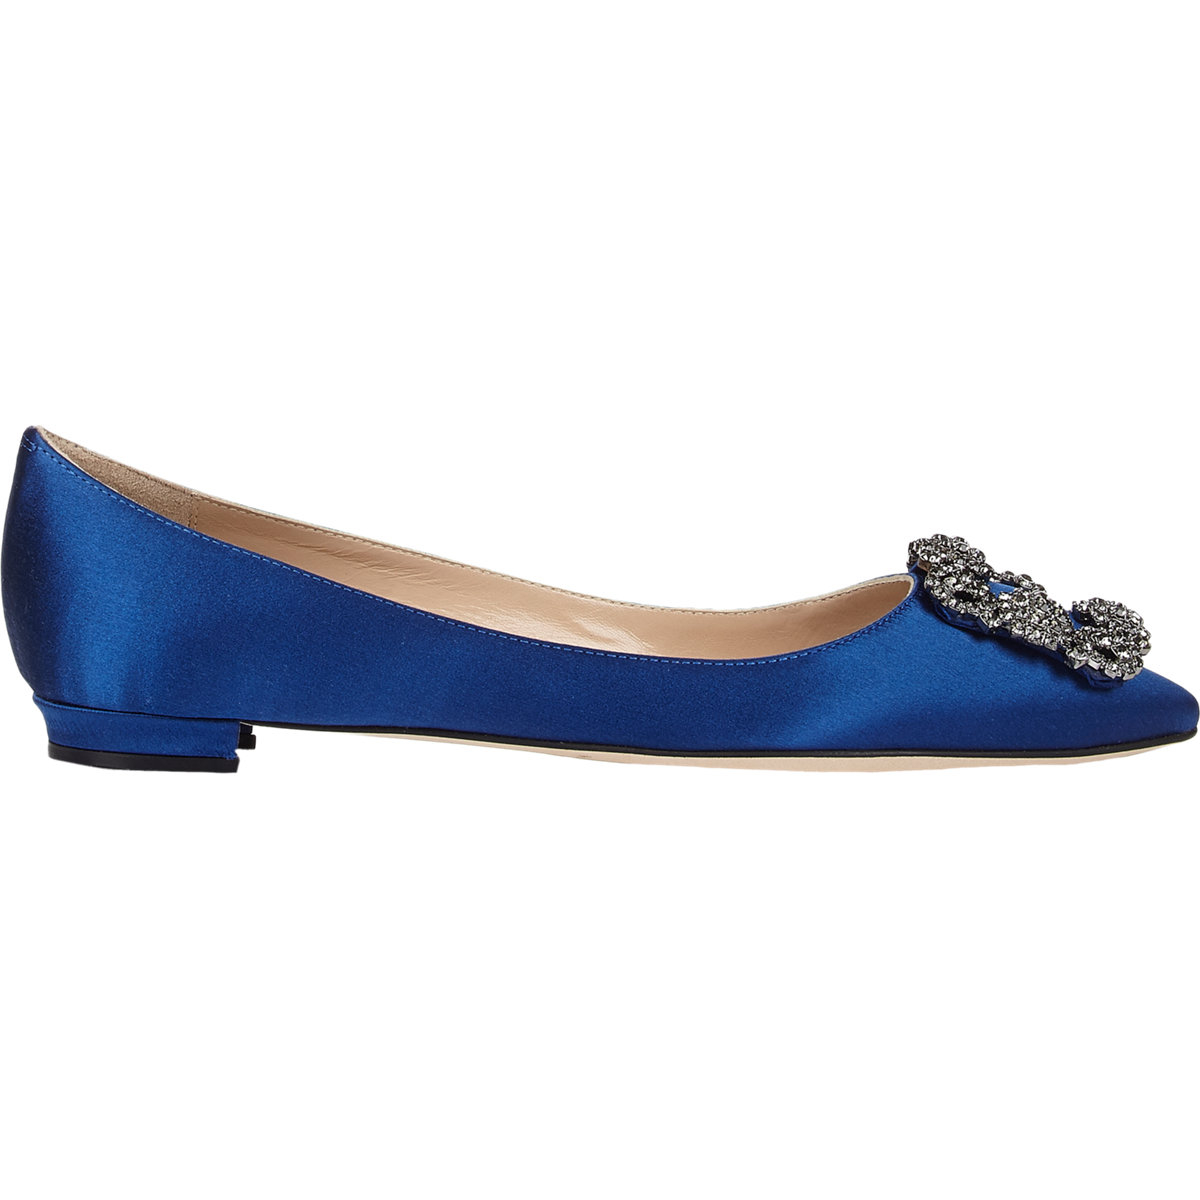 manolo blahnik shoes blue flats